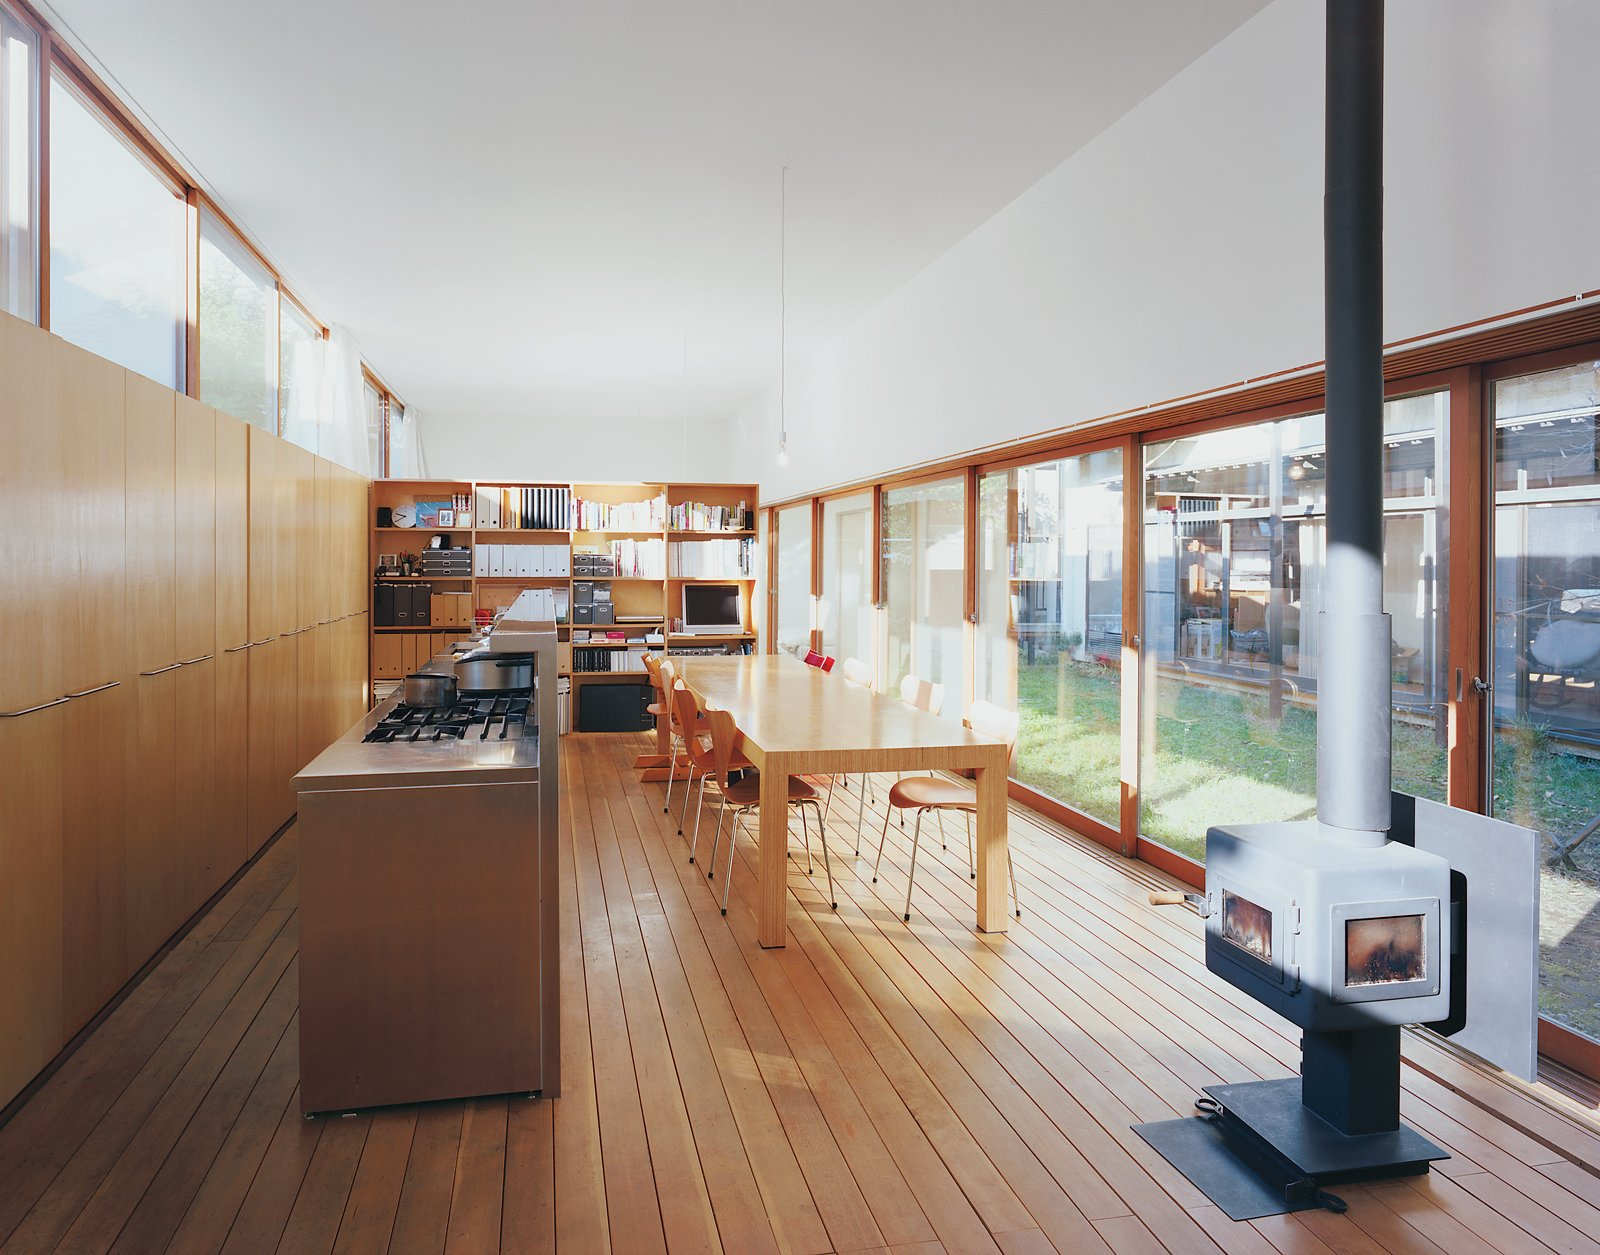 The architects designed the large dining table, which is framed by the open kitchen, the wood-burning stove, and the garden beyond. Tagged: Kitchen, Light Hardwood Floor, and Wood Cabinet.  Modern Wood-Burning Stoves by Megan Hamaker from Clever Room Dividers that Double as Storage Space